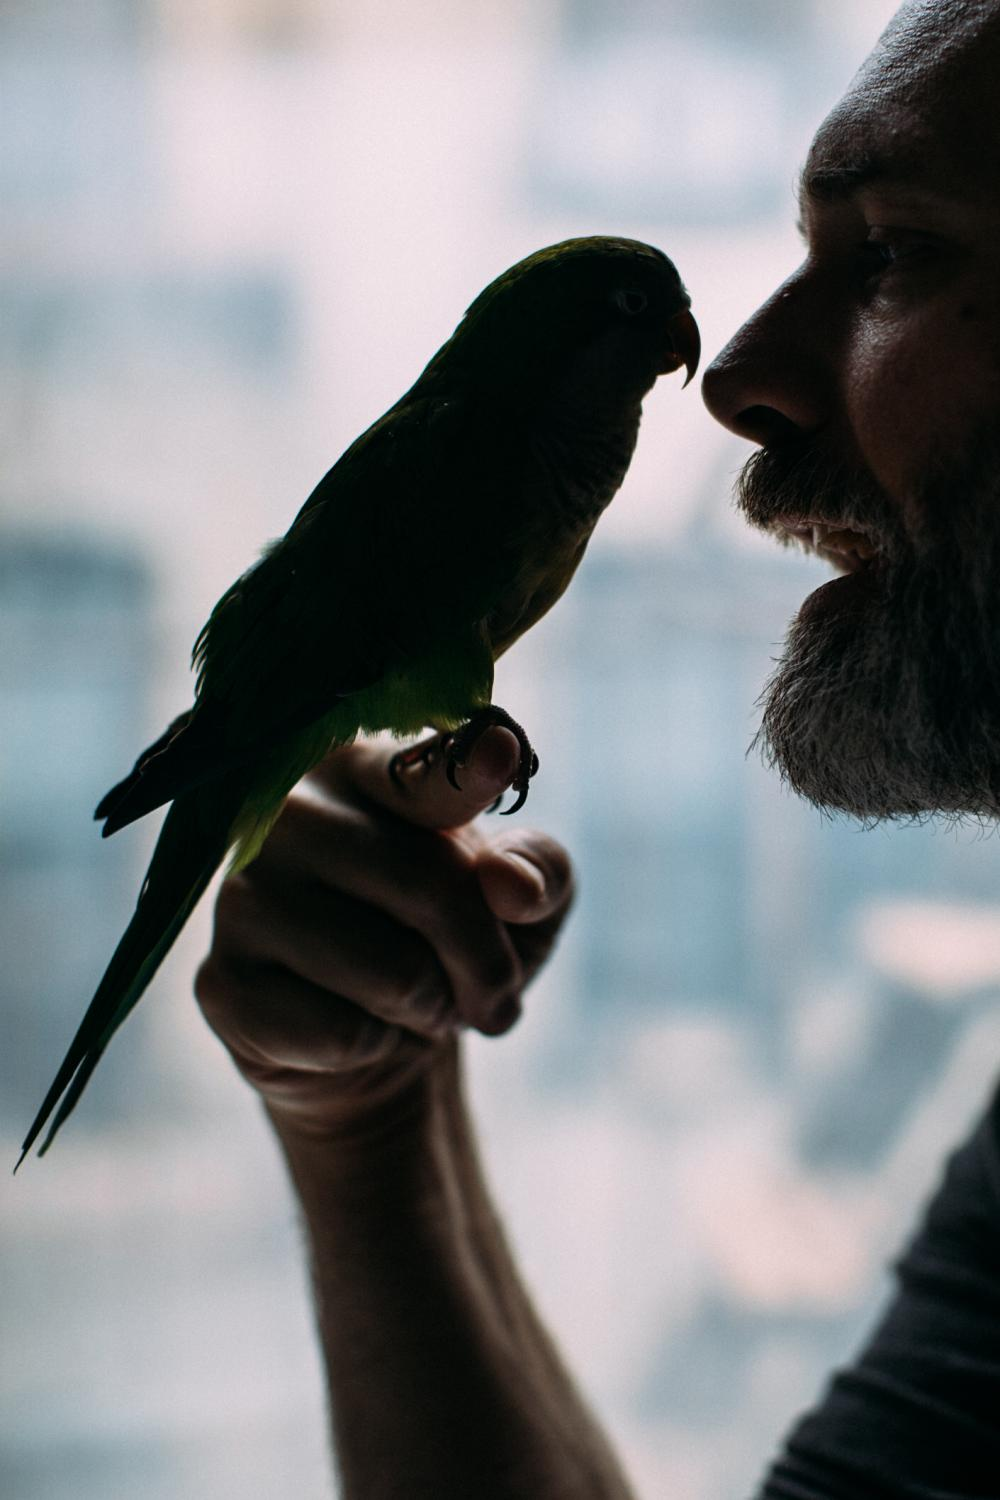 Justin Marshall and his vibrant green male Quaker Parrot, Chicken, for The New York Times